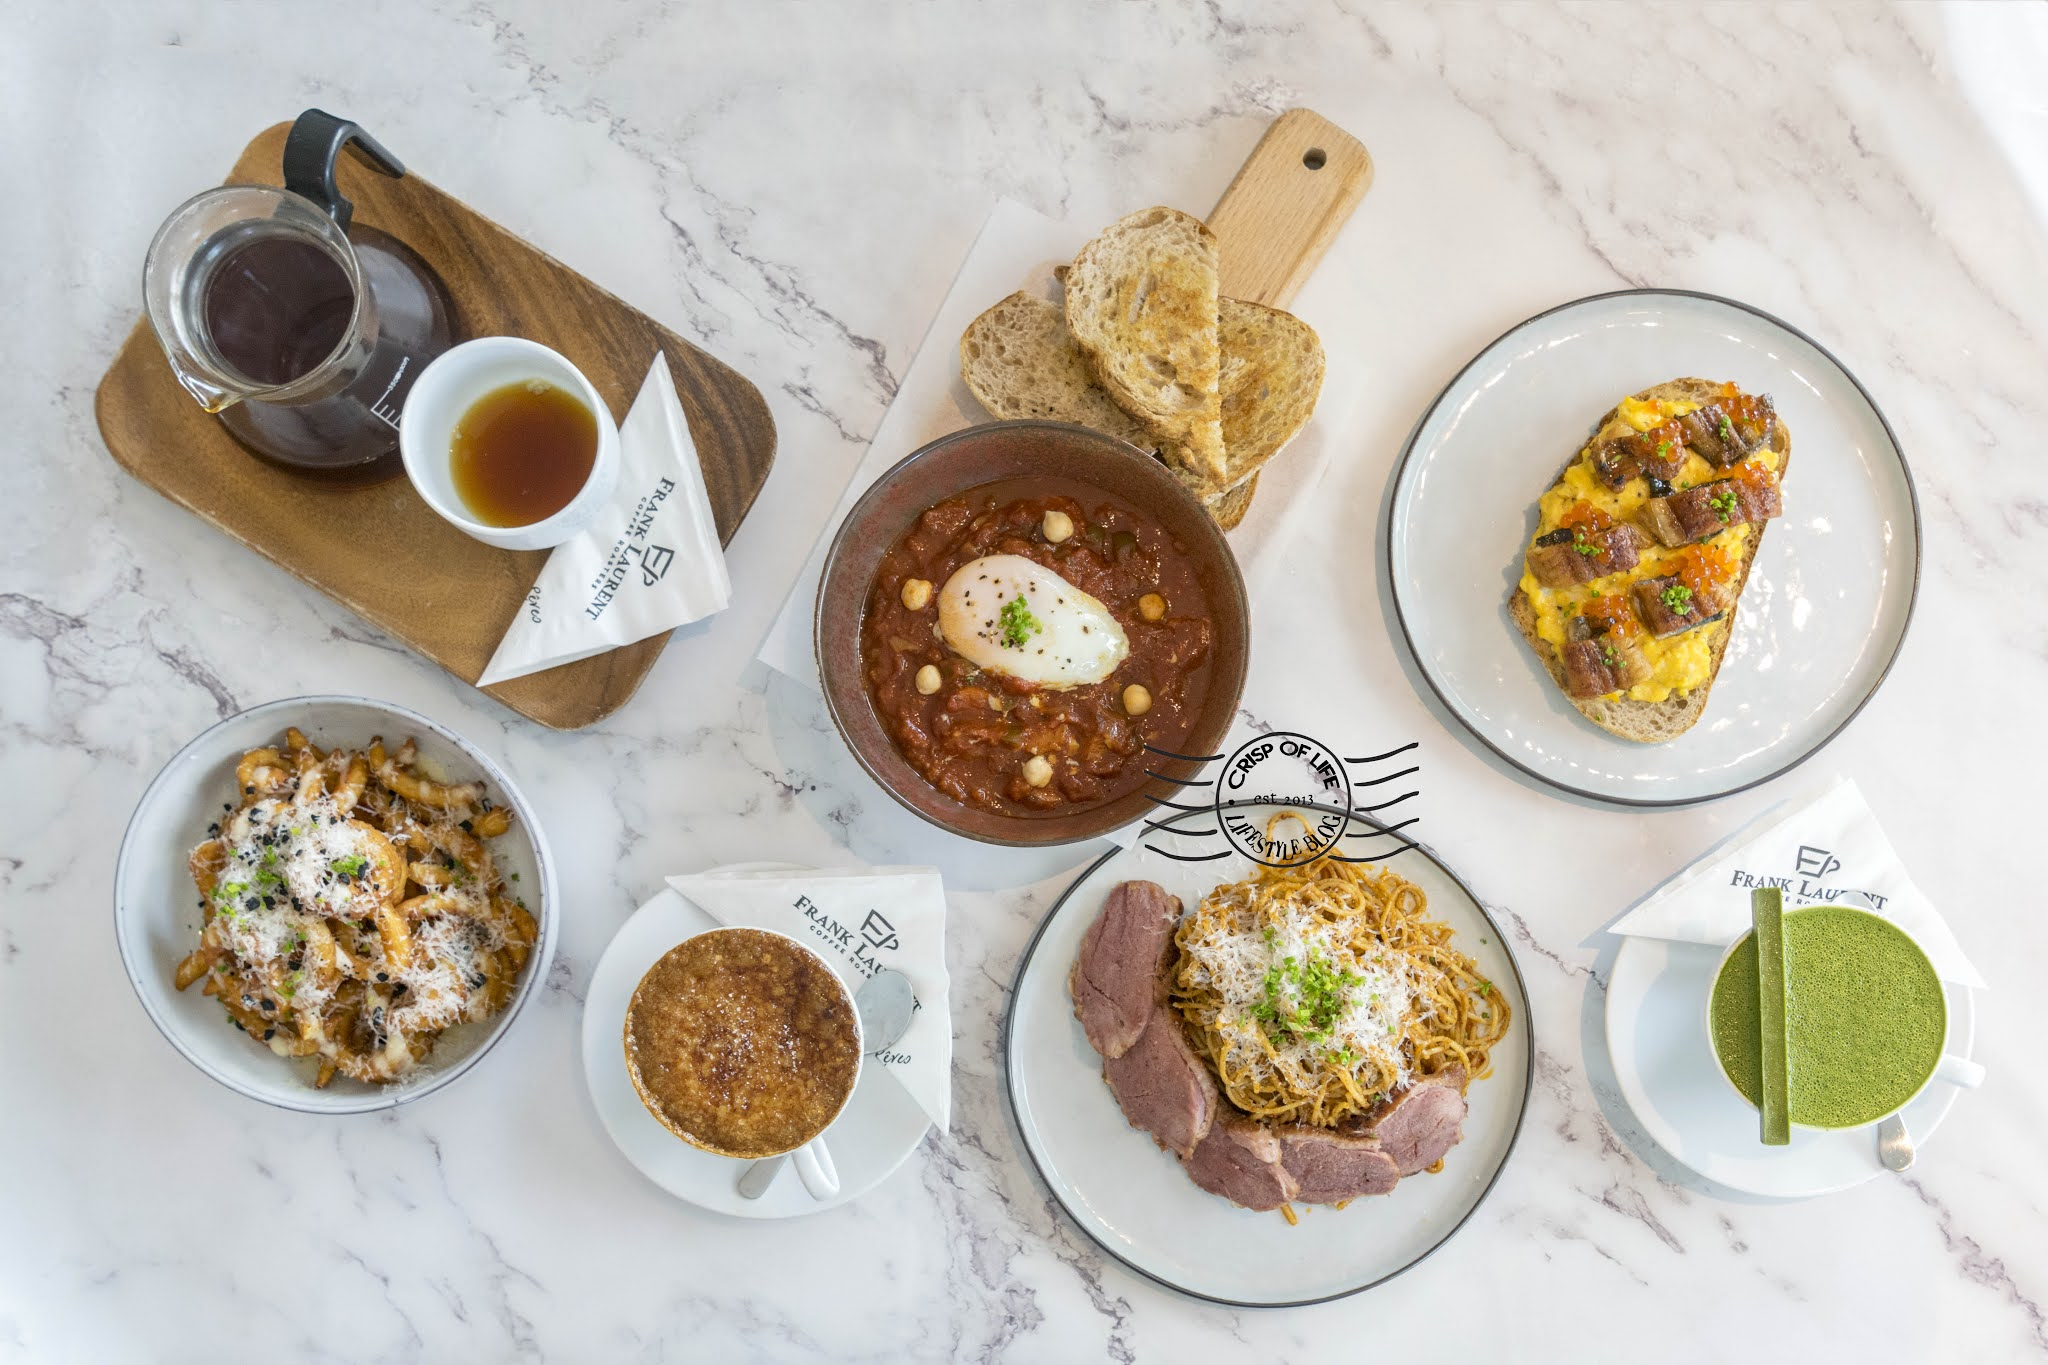 New Menu Launched by Frank Laurent Cafe